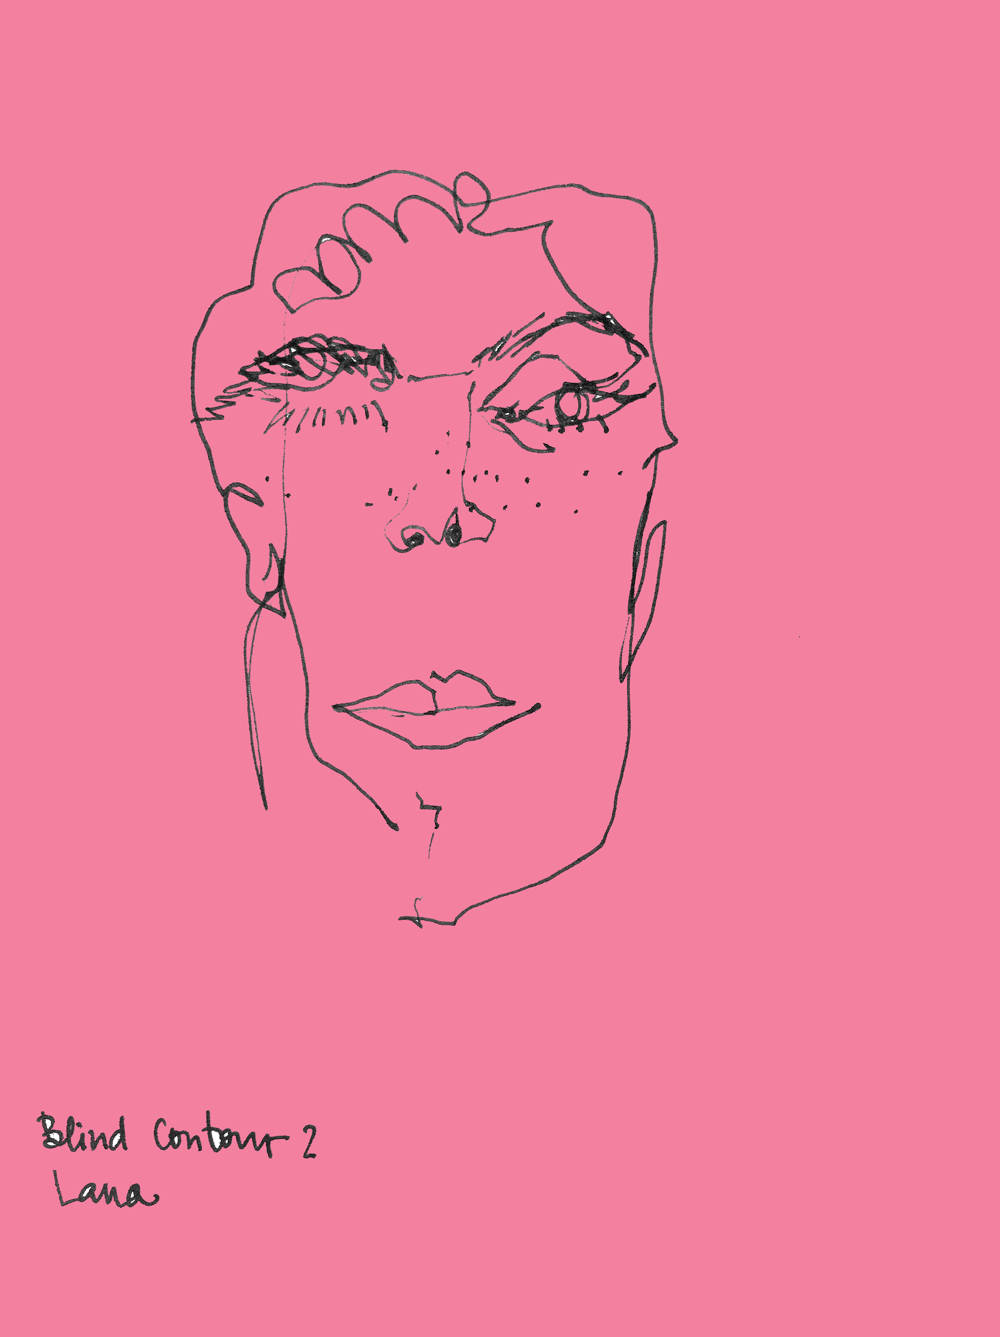 blind contour+simple hand drawing - image 2 - student project